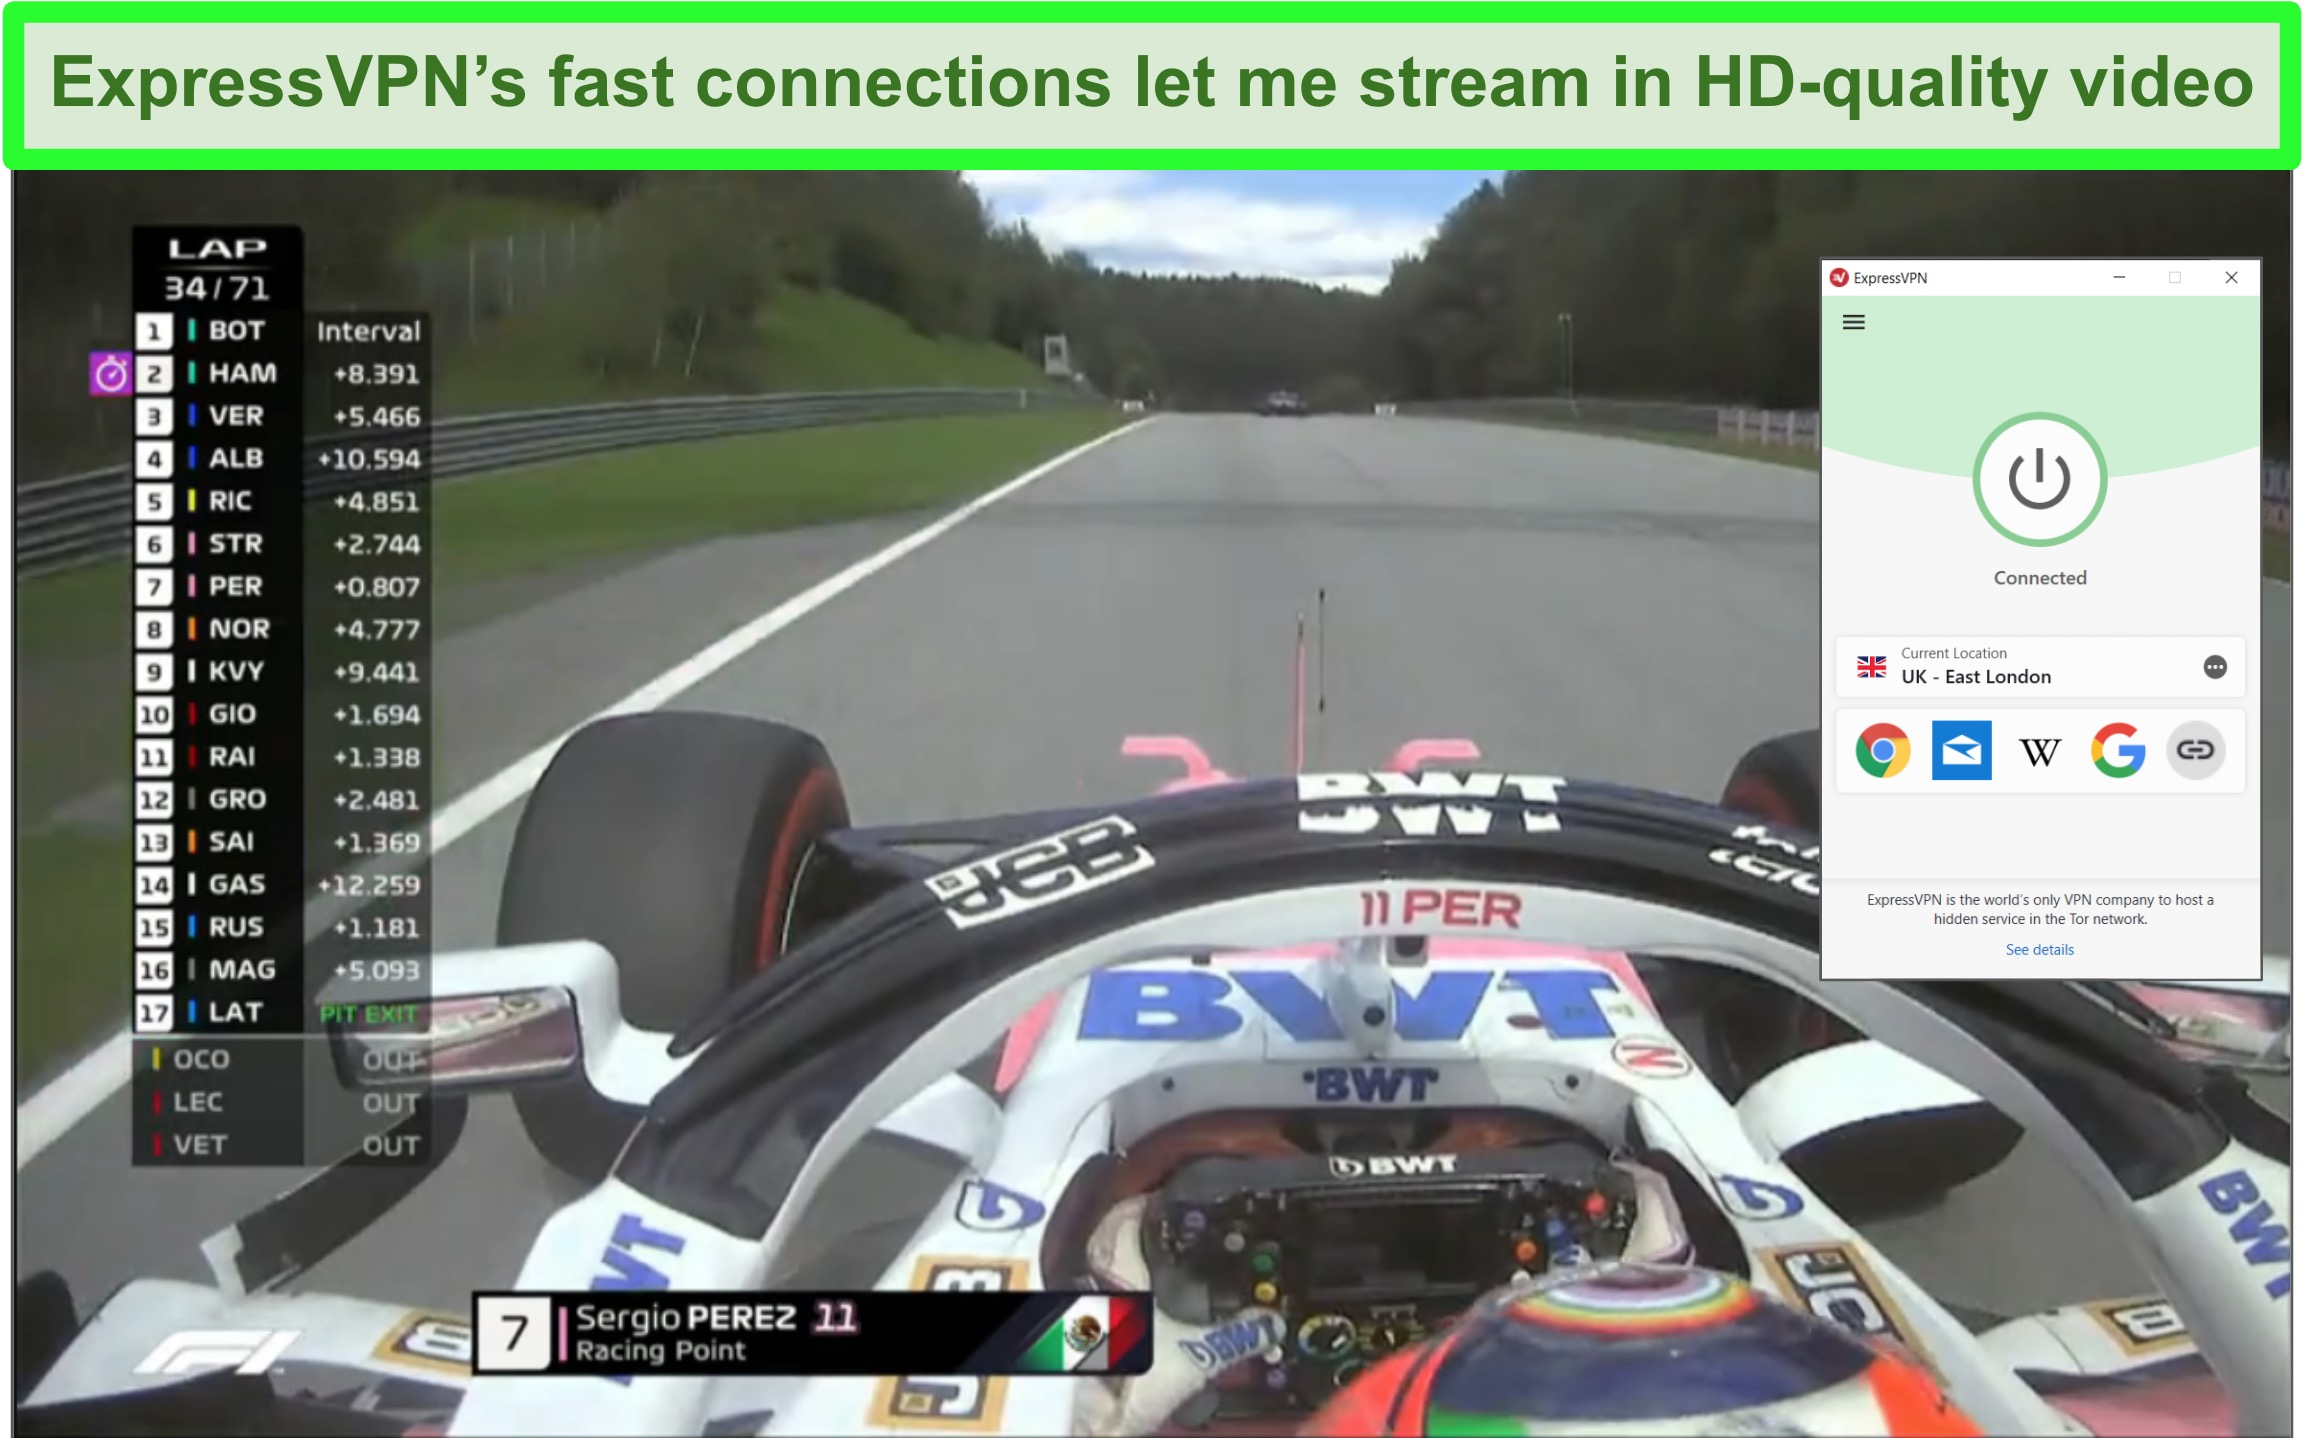 Screenshot of F1 race streaming with ExpressVPN connected to UK server.